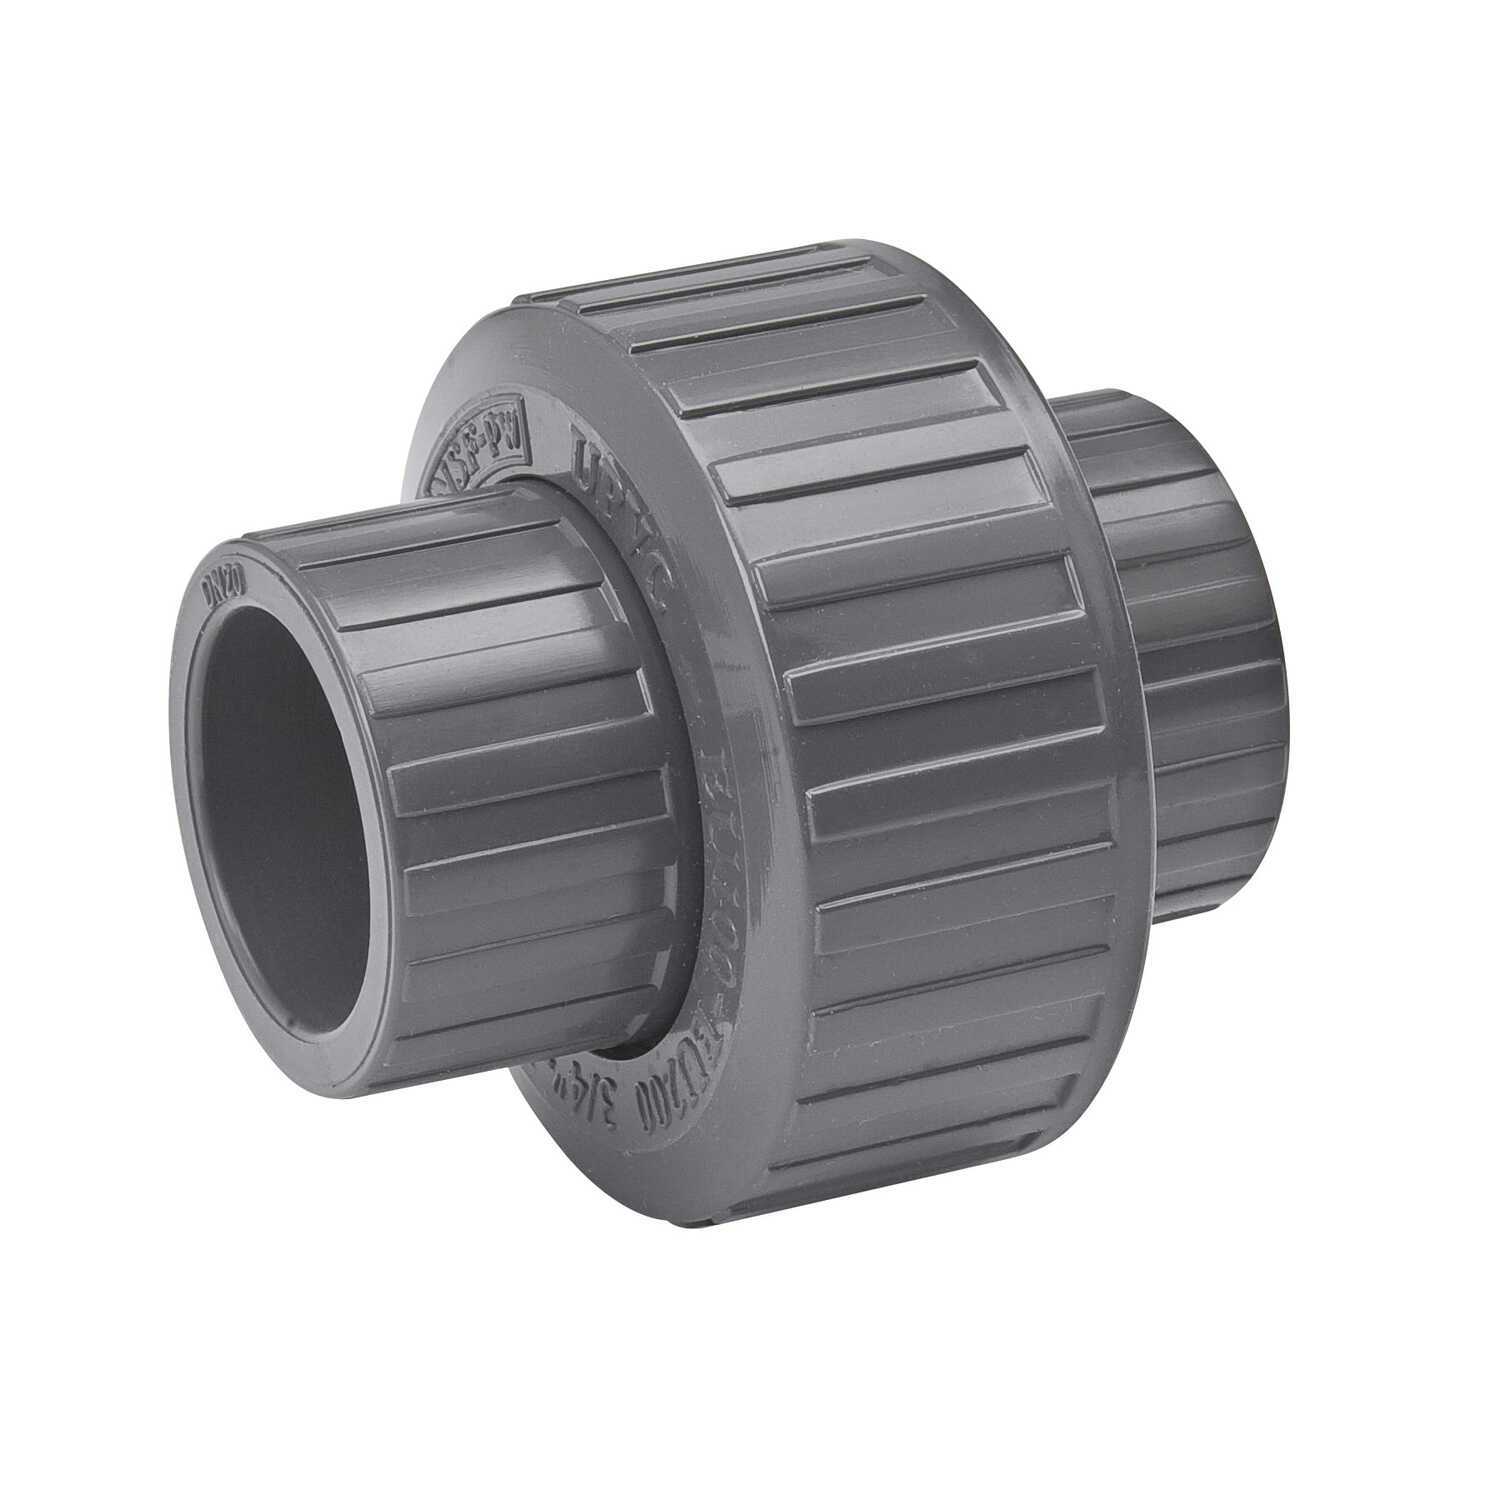 B & K  ProLine  Schedule 80  1-1/4 in. Socket   x 1-1/4 in. Dia. Socket  PVC  Union